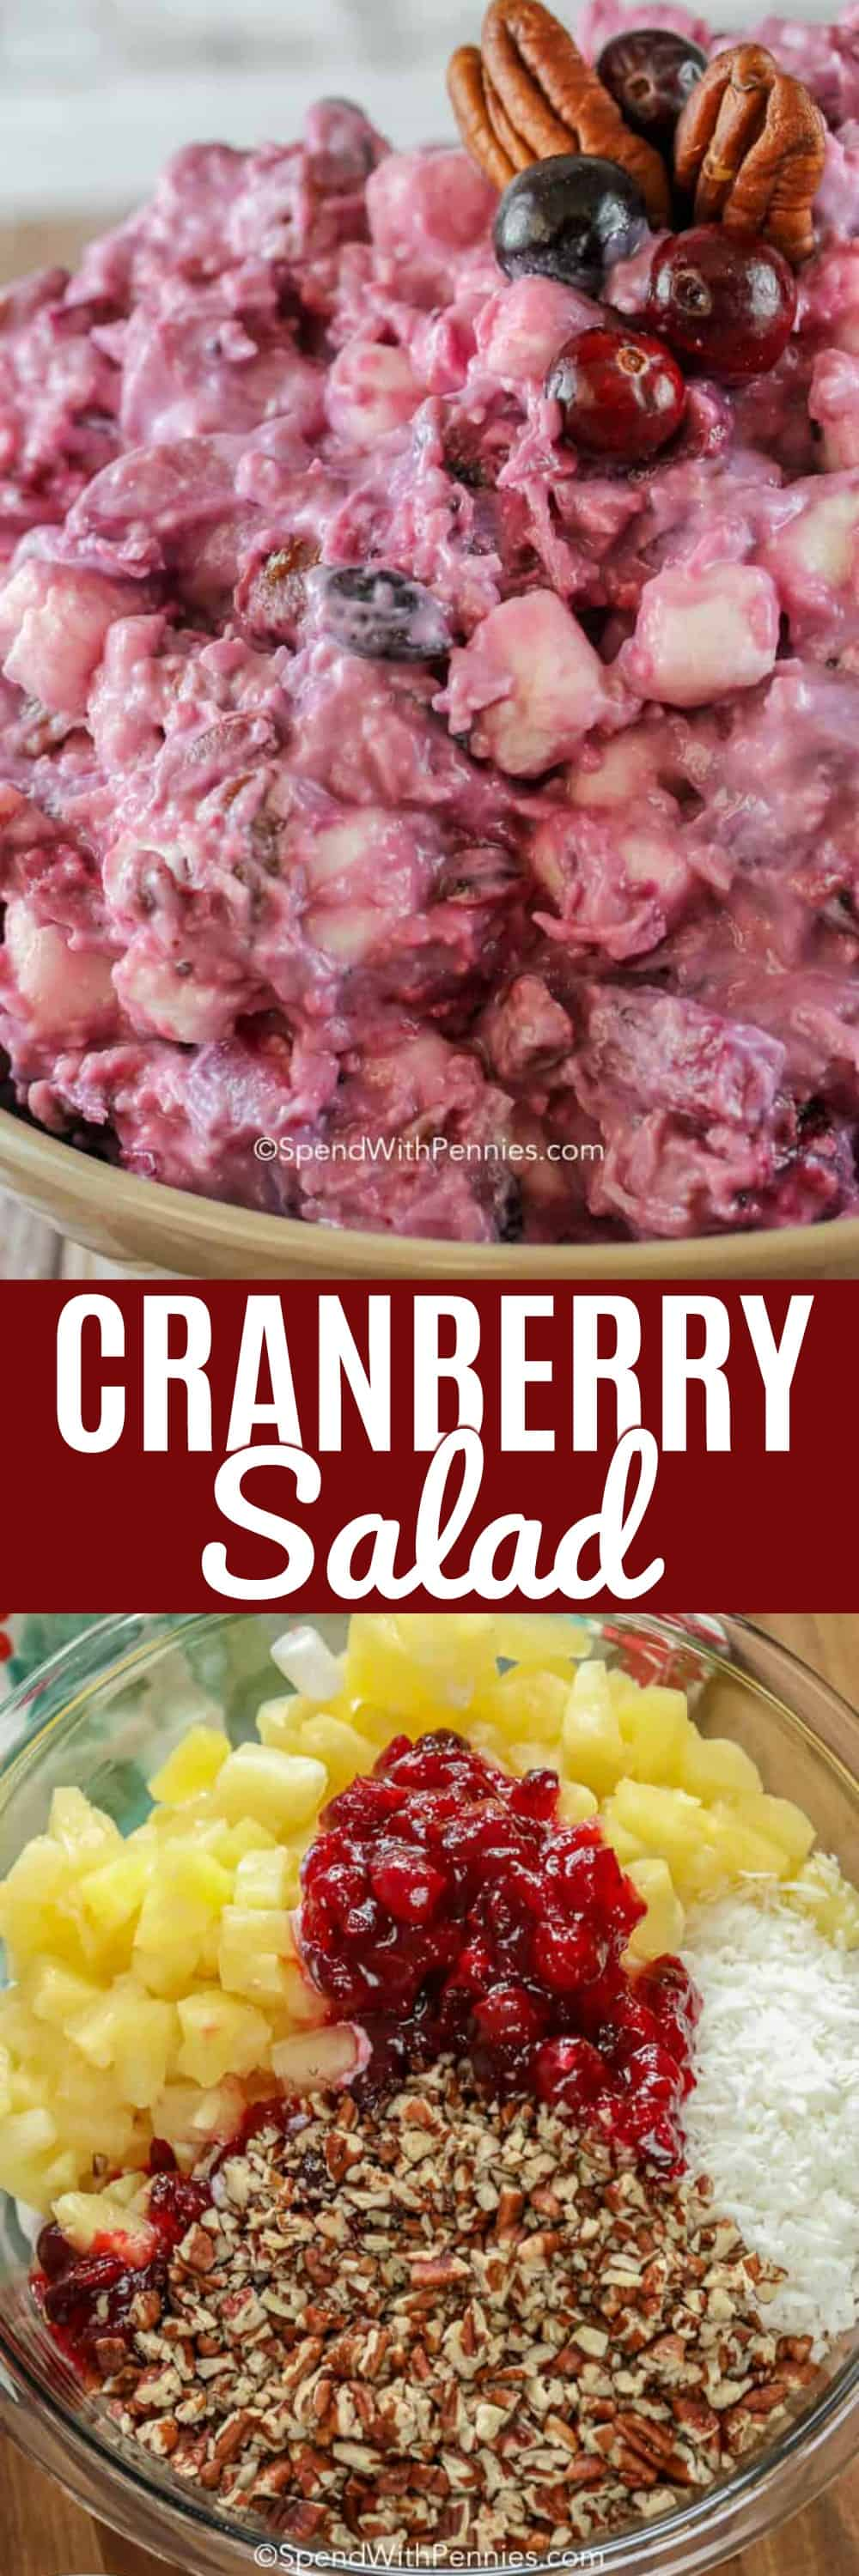 This Cranberry Salad is the perfect side for any turkey dinner! A delicious mixture of fresh homemade cranberry sauce combined with pecans, coconut, marshmallows and pineapple. The result is a sweet and tart side so good you'll want to eat it for dessert too! #spendwithpennies #cranberrysalad #sidedish #easyrecipe #thanksgiving #festivesidedish #festivesalad #withpecans #cranberries